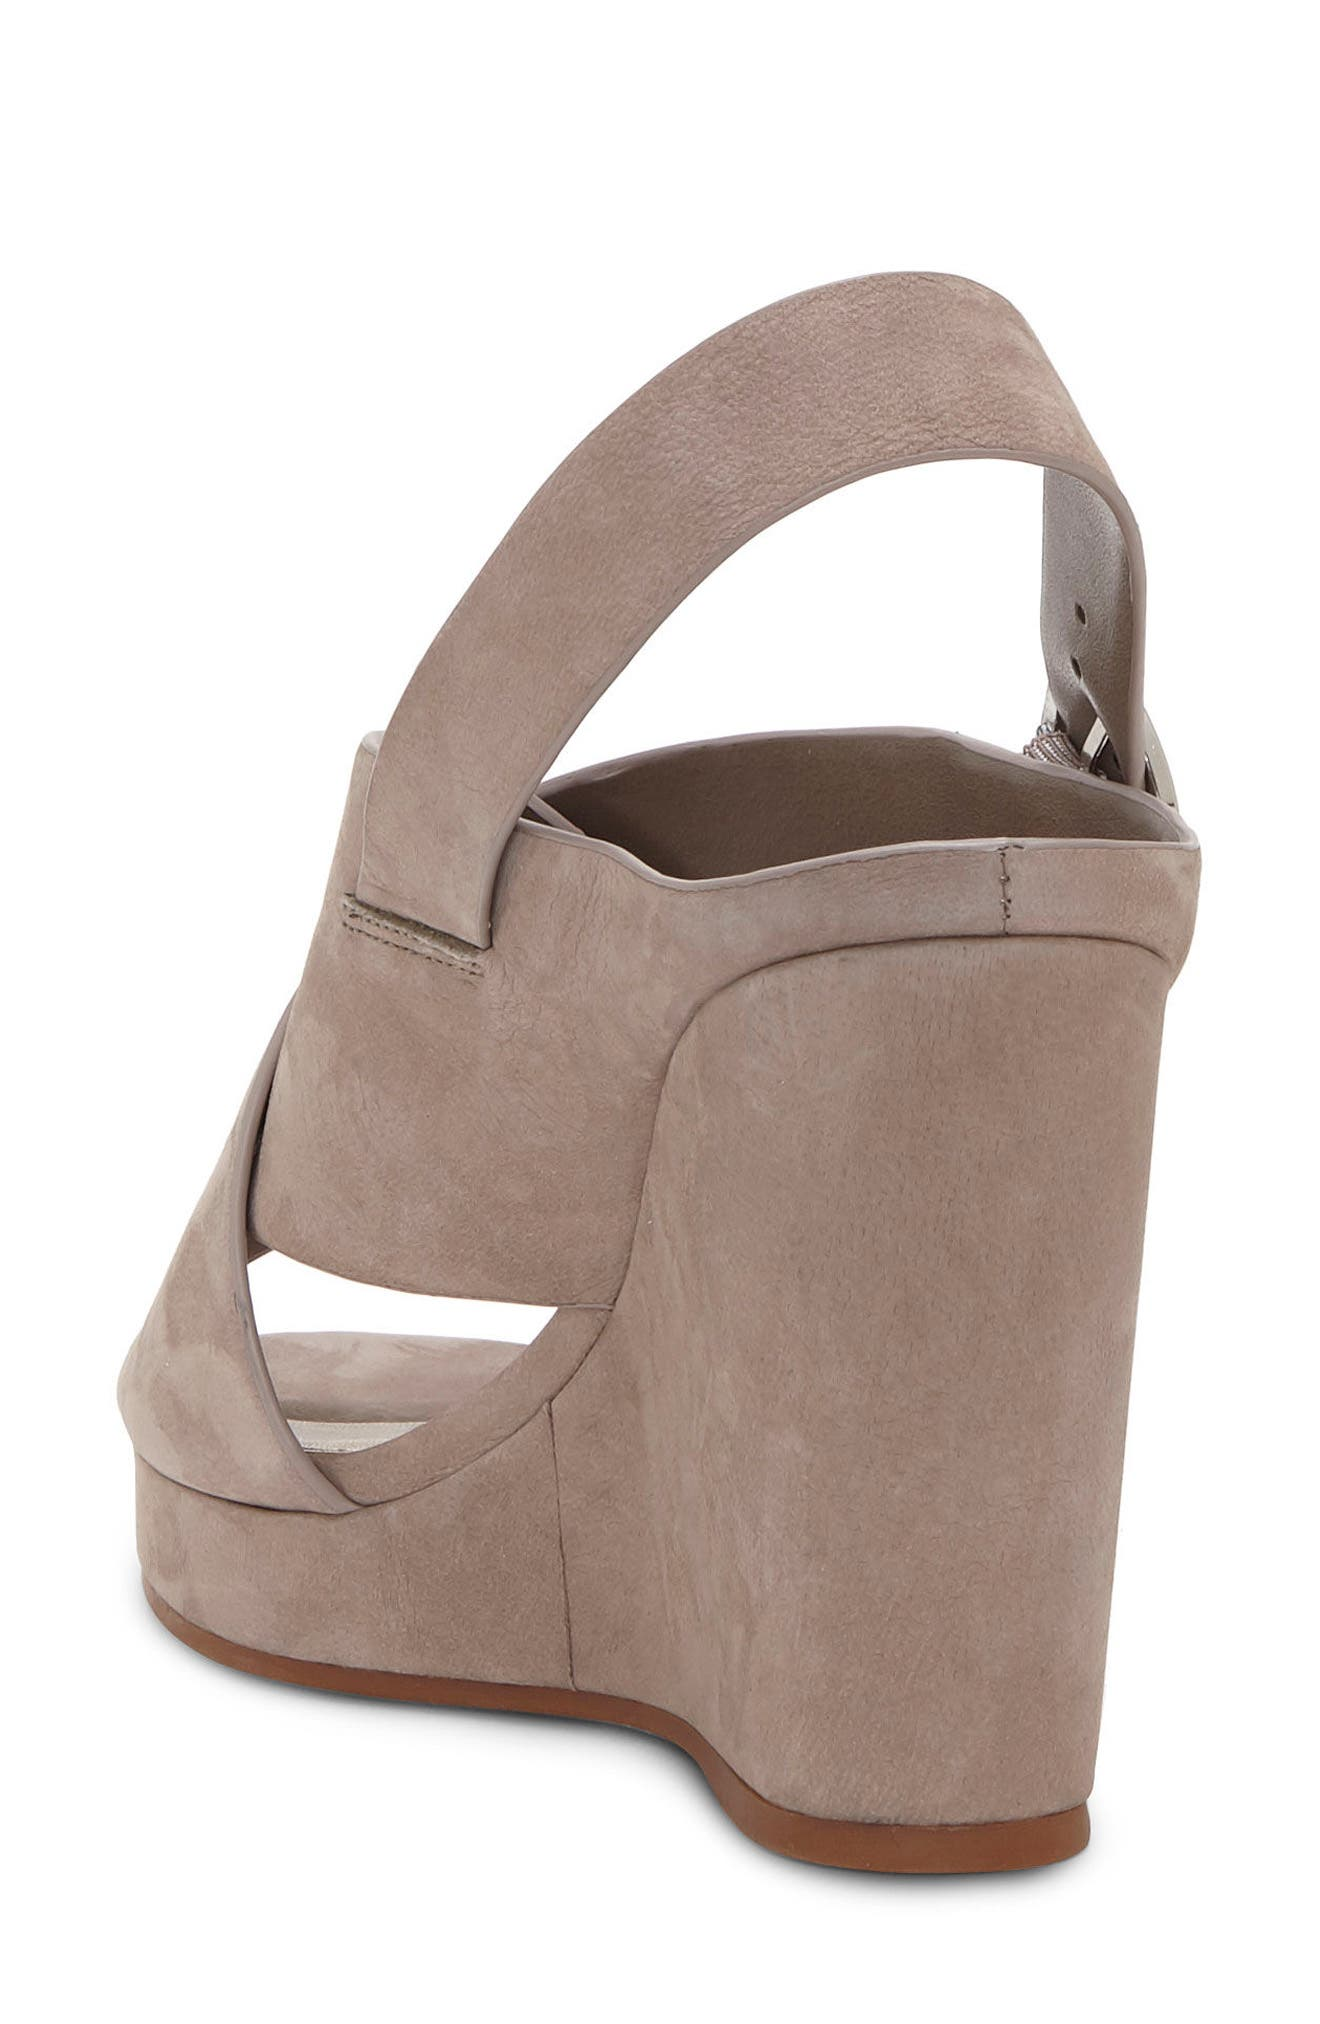 Iteena Wedge Sandal,                             Alternate thumbnail 2, color,                             Hippo Grey Leather